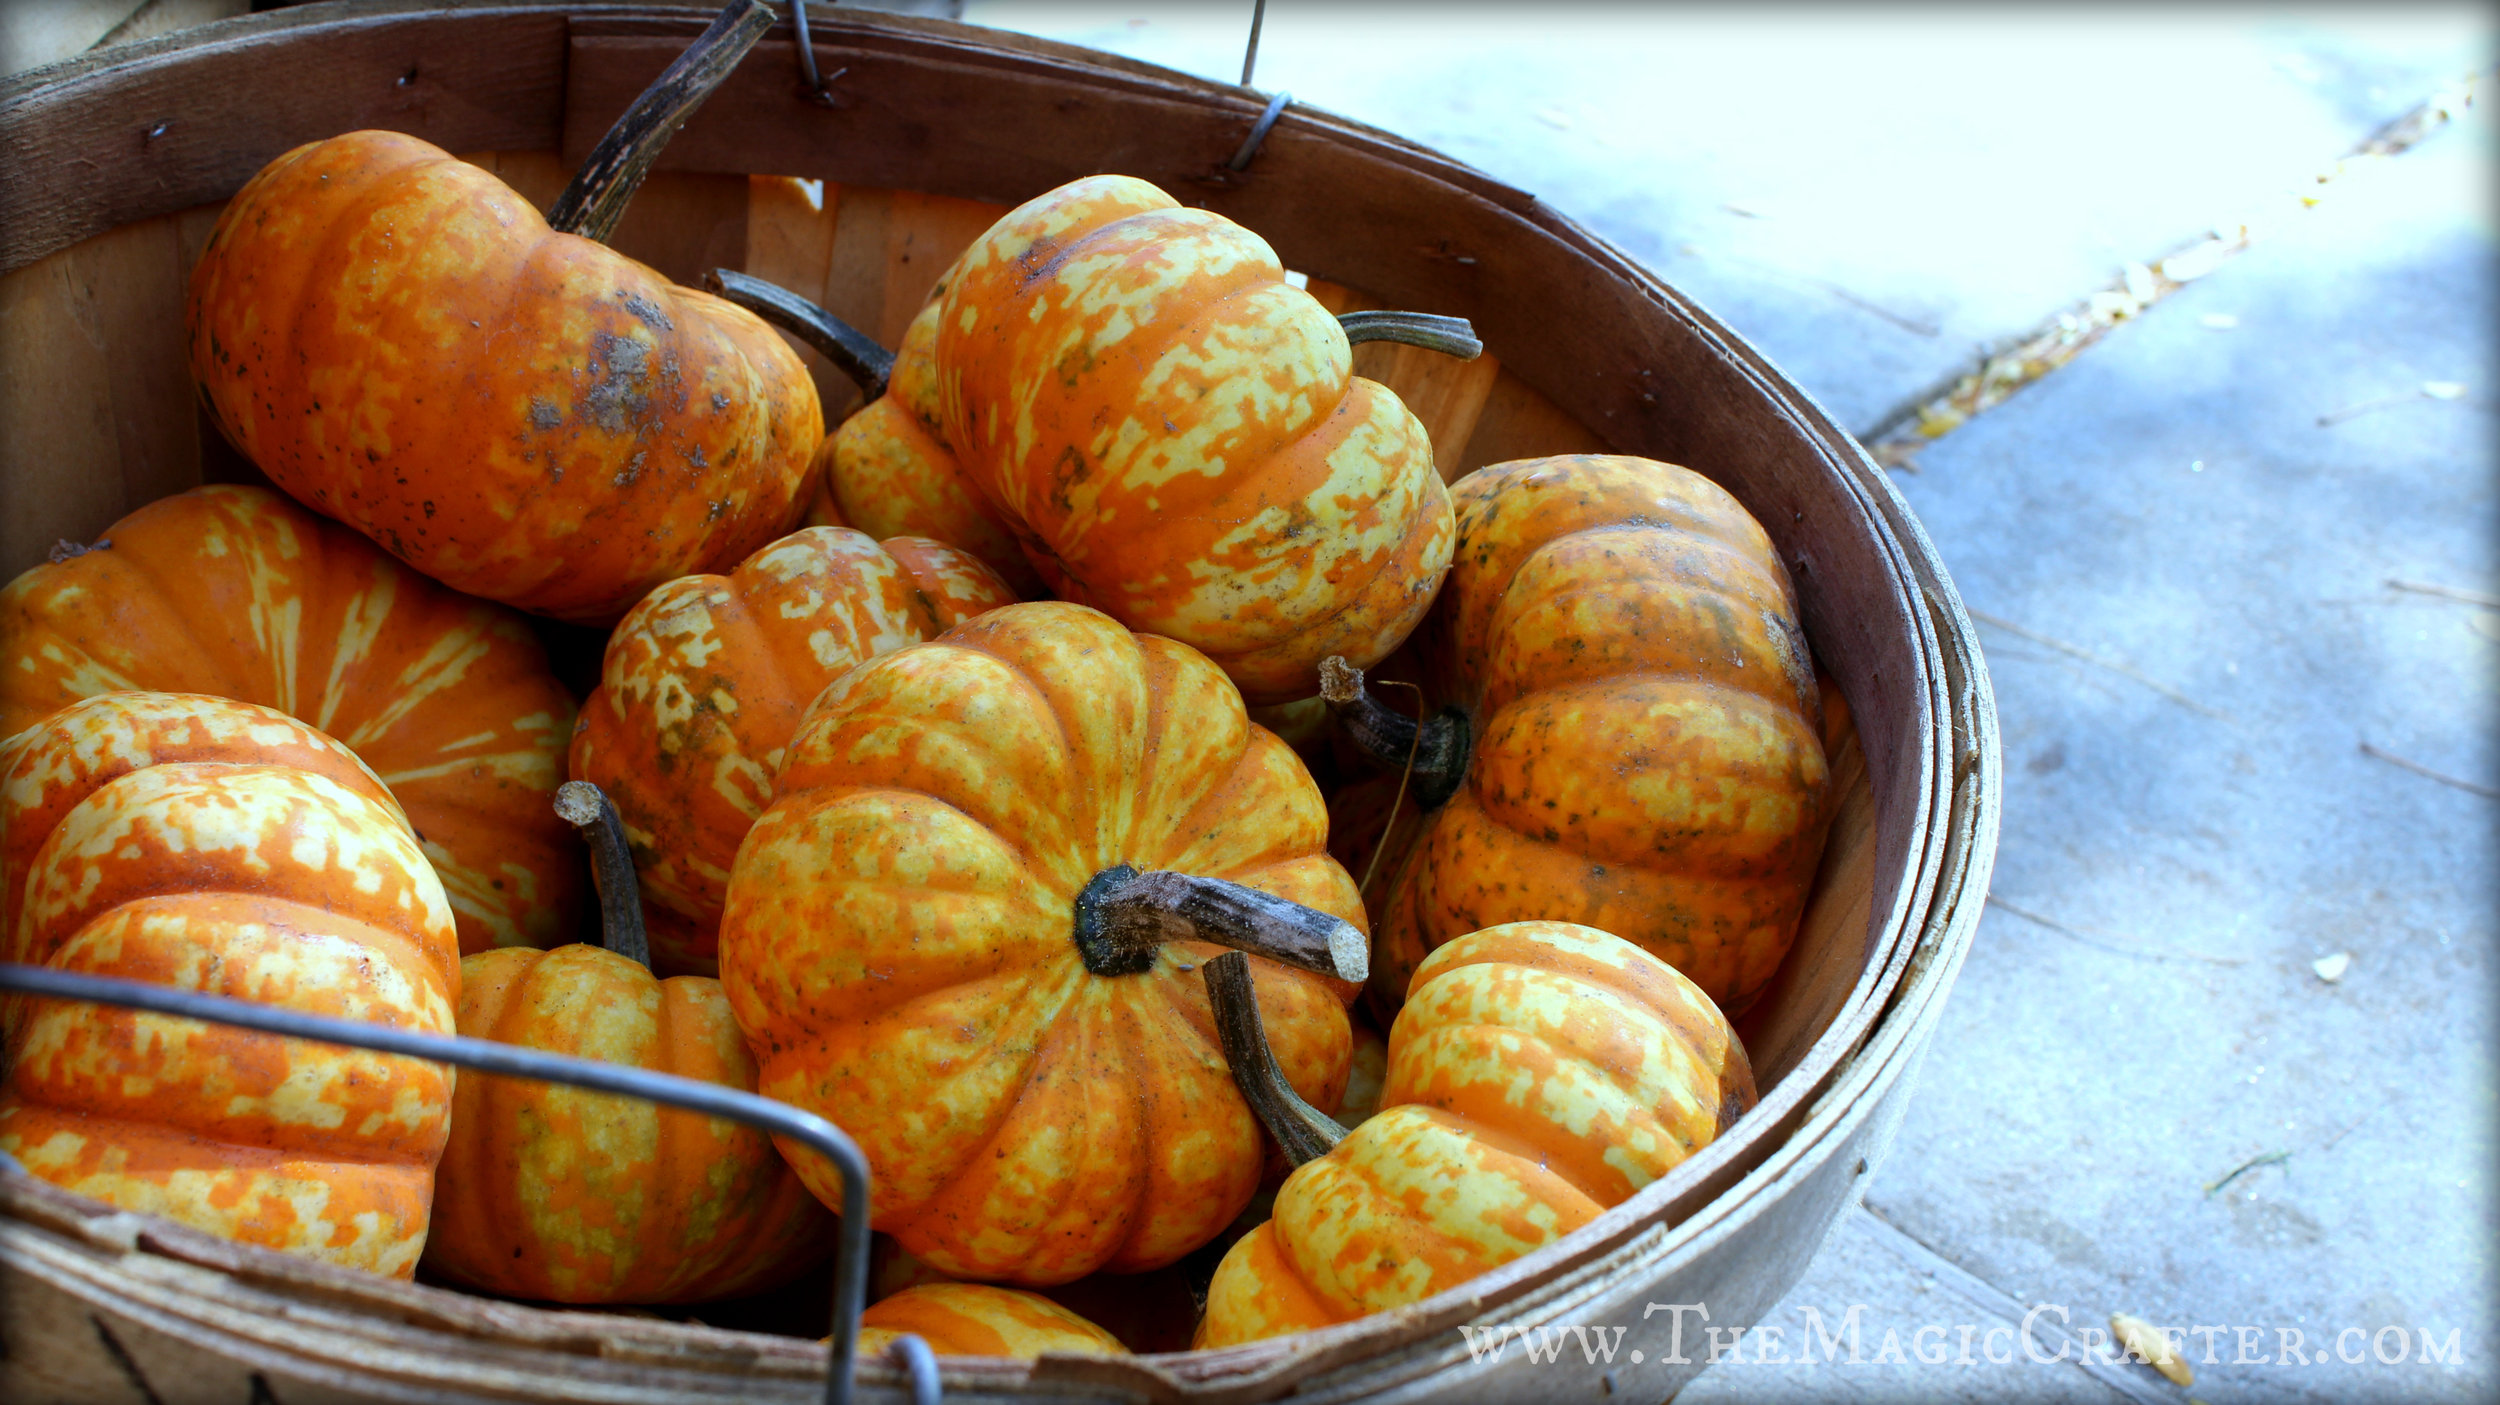 Aren't these Jack-be-Little pumpkins so precious!?! I thought they were especially cute!